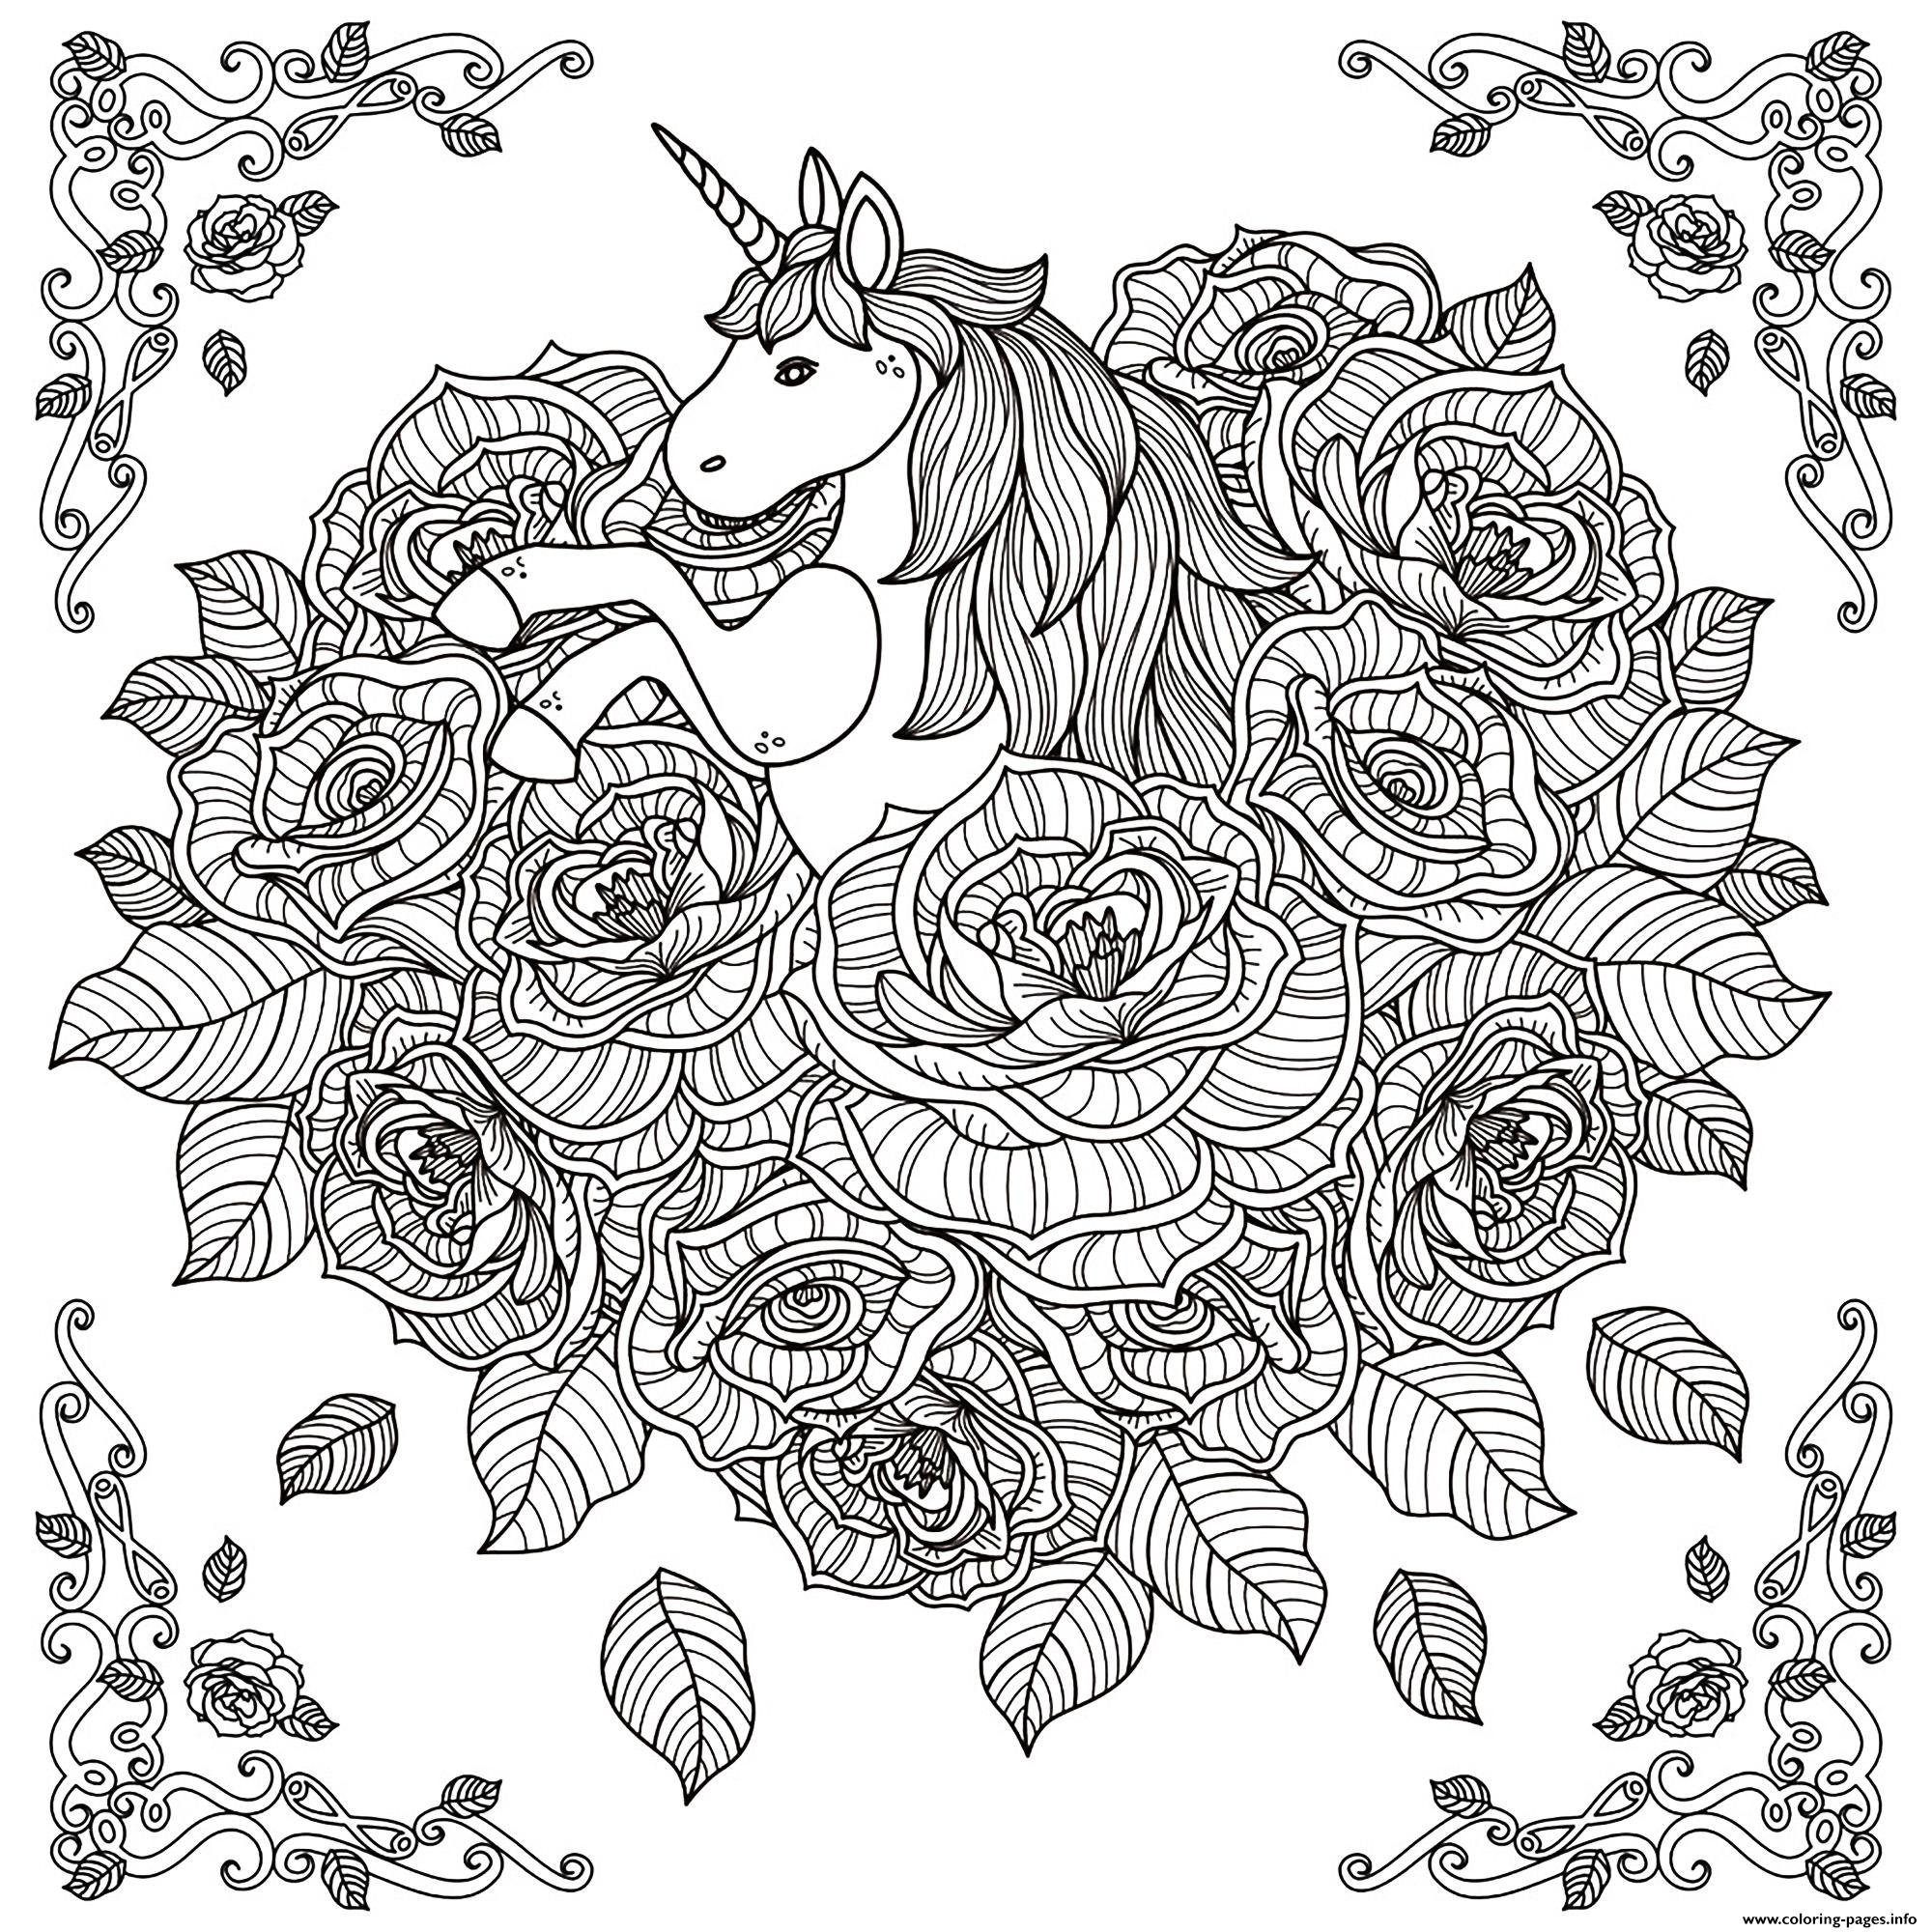 Unicorn Adult By Kchung coloring pages